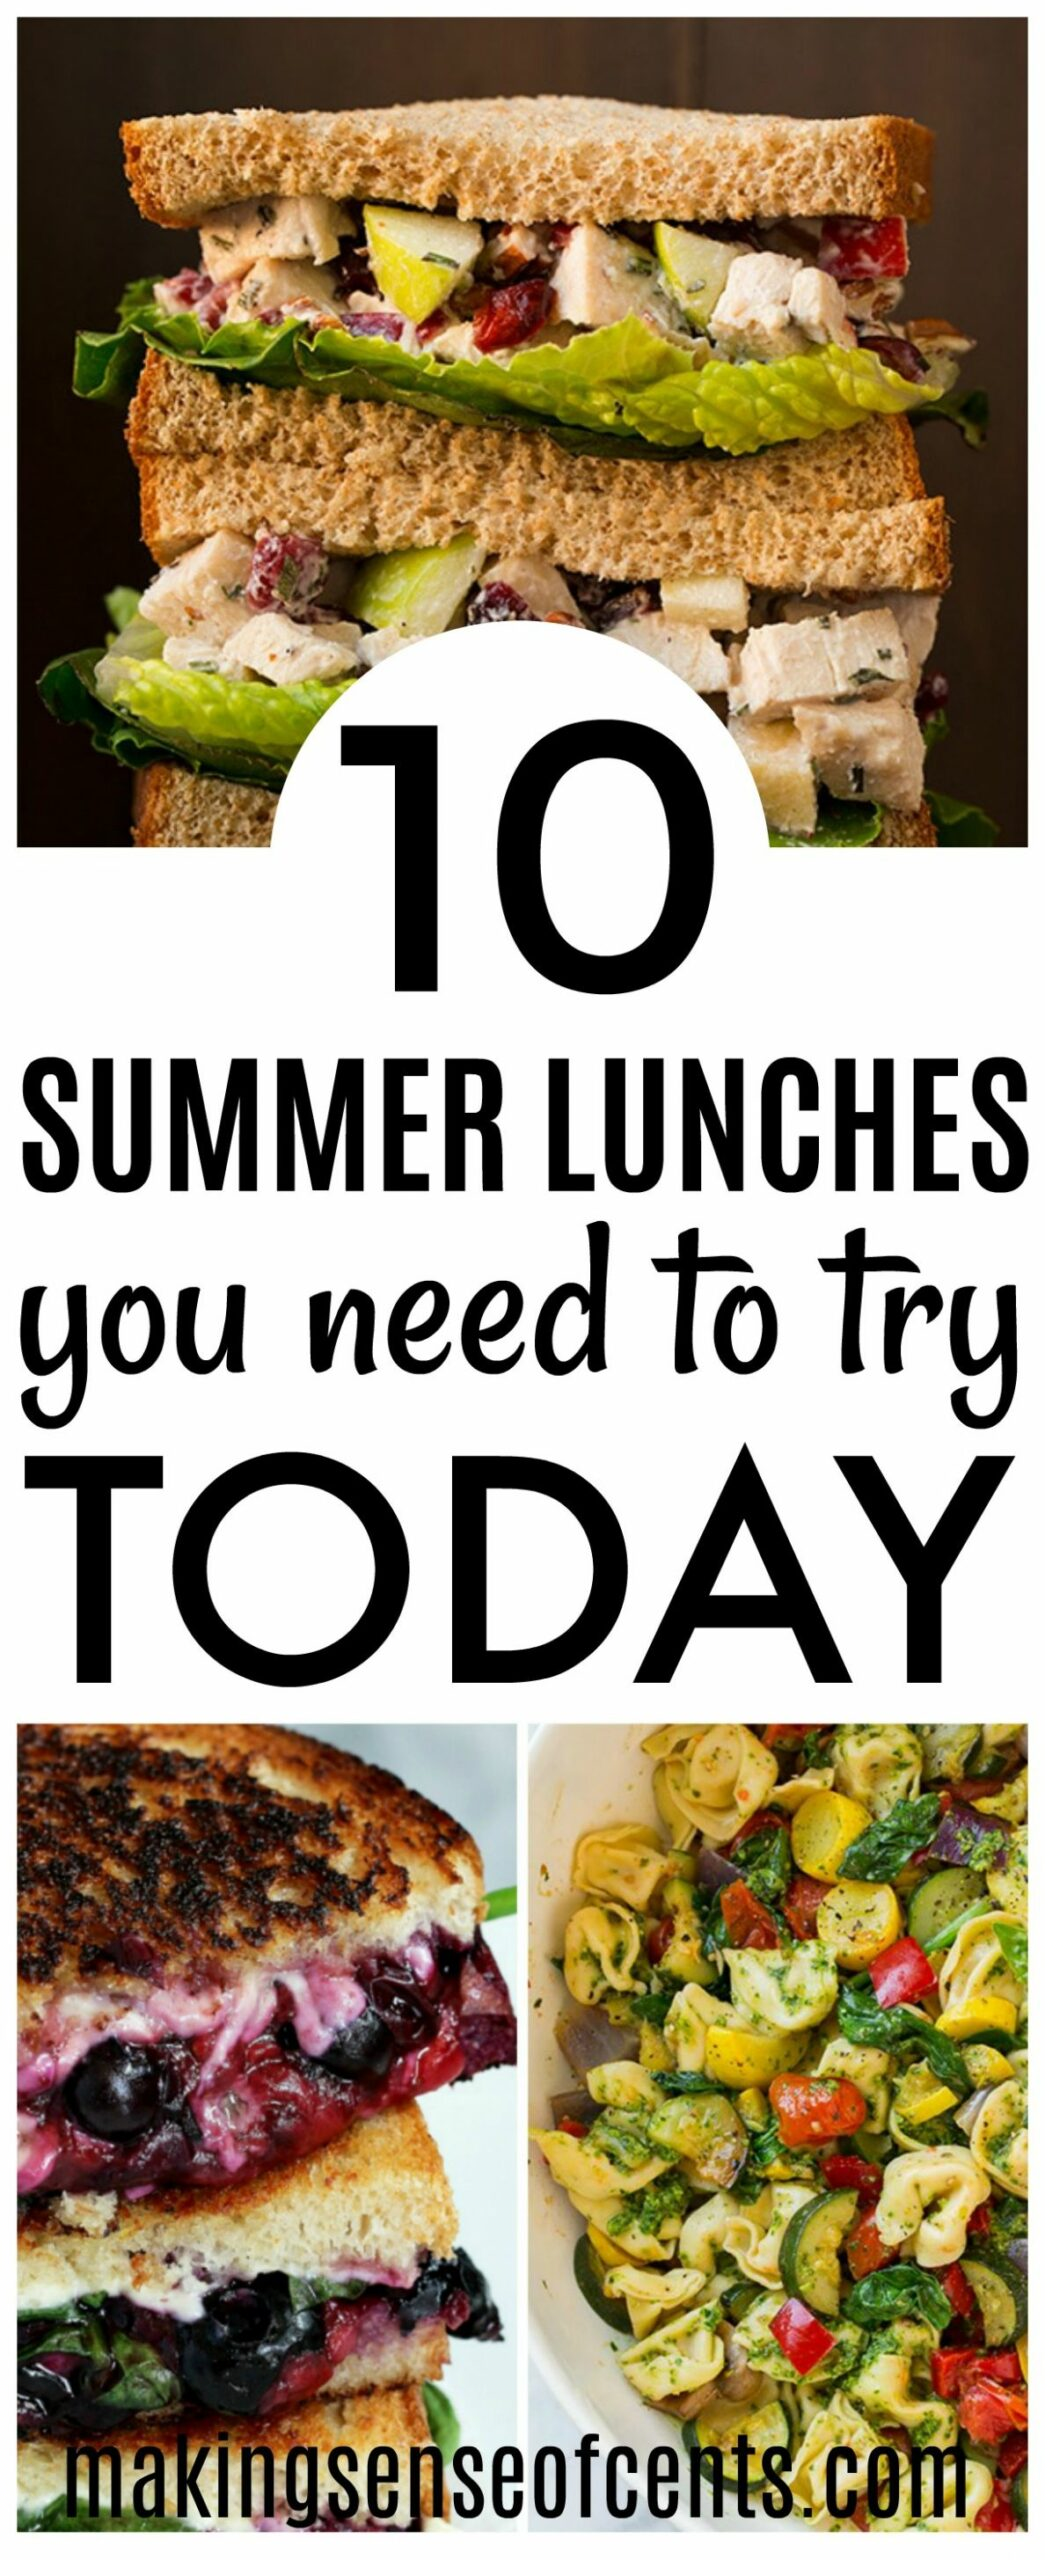 10 Delicious Summer Lunch Ideas - Summer Meals You Need To Make!